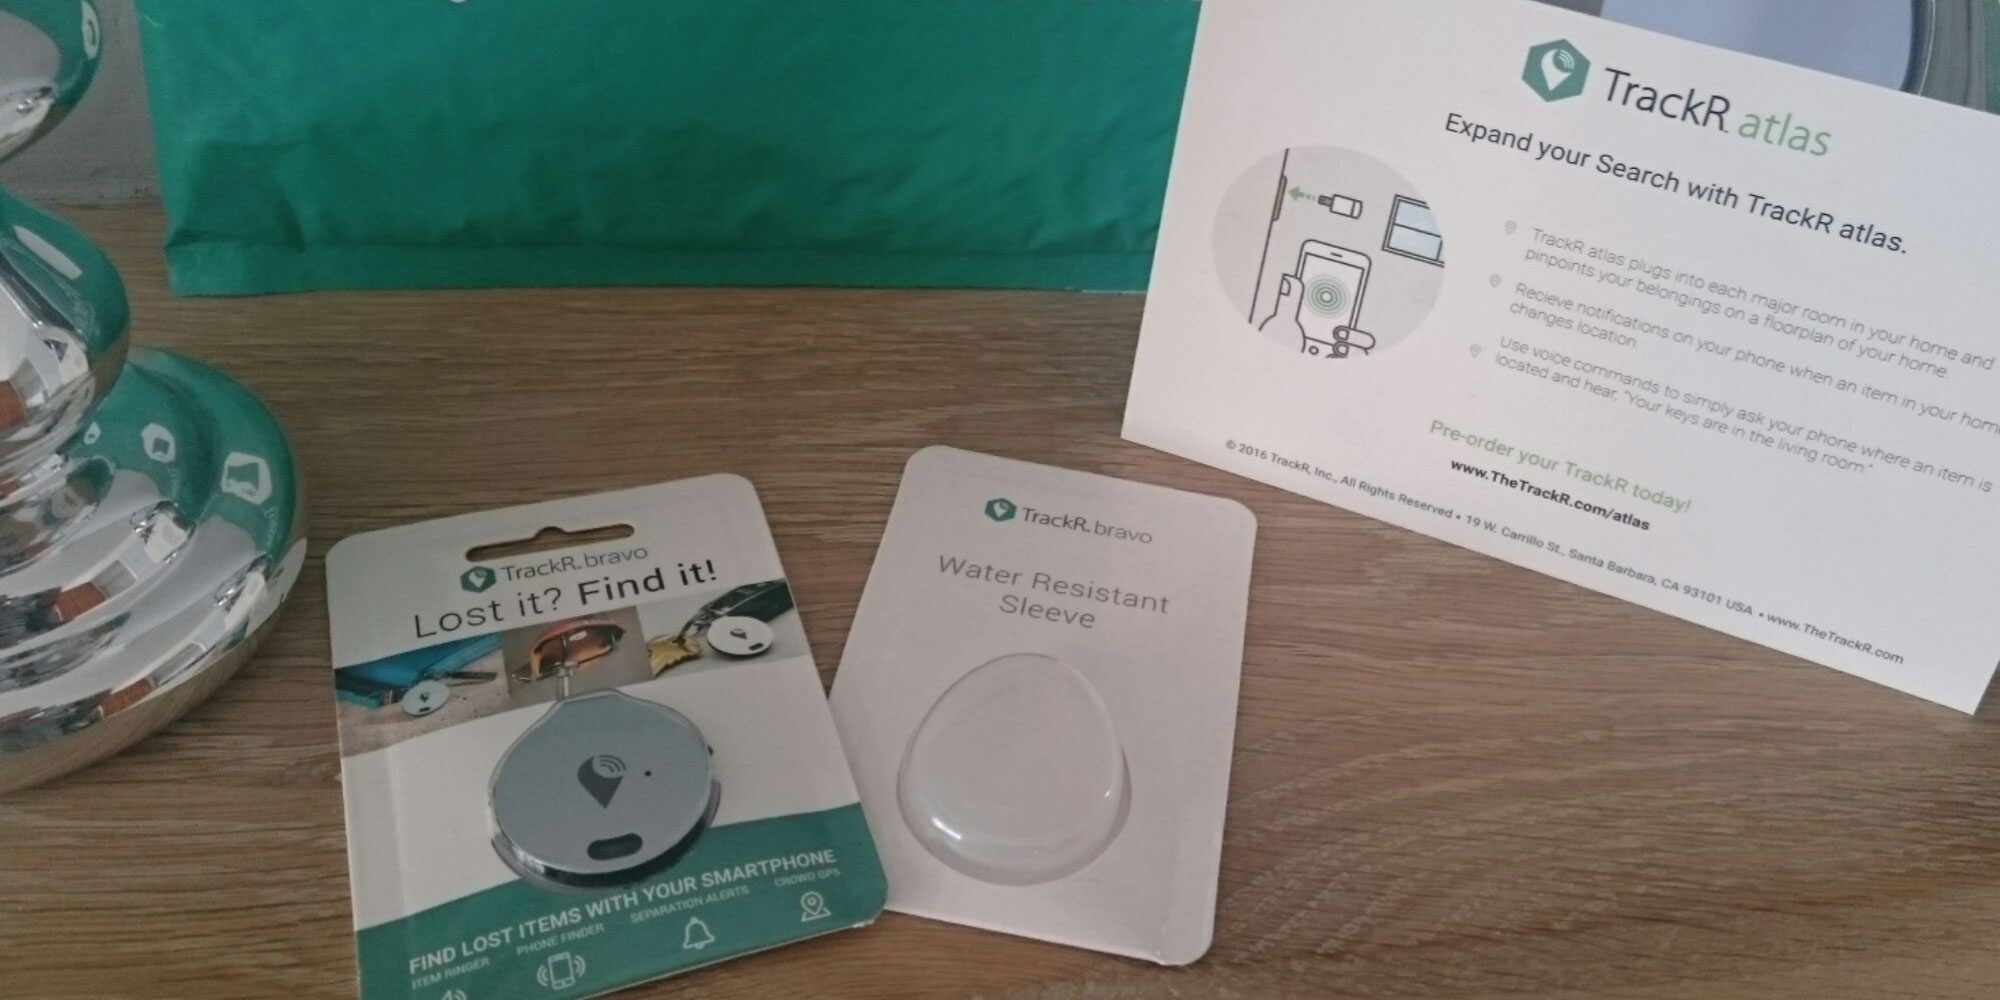 TrackR Product Samples